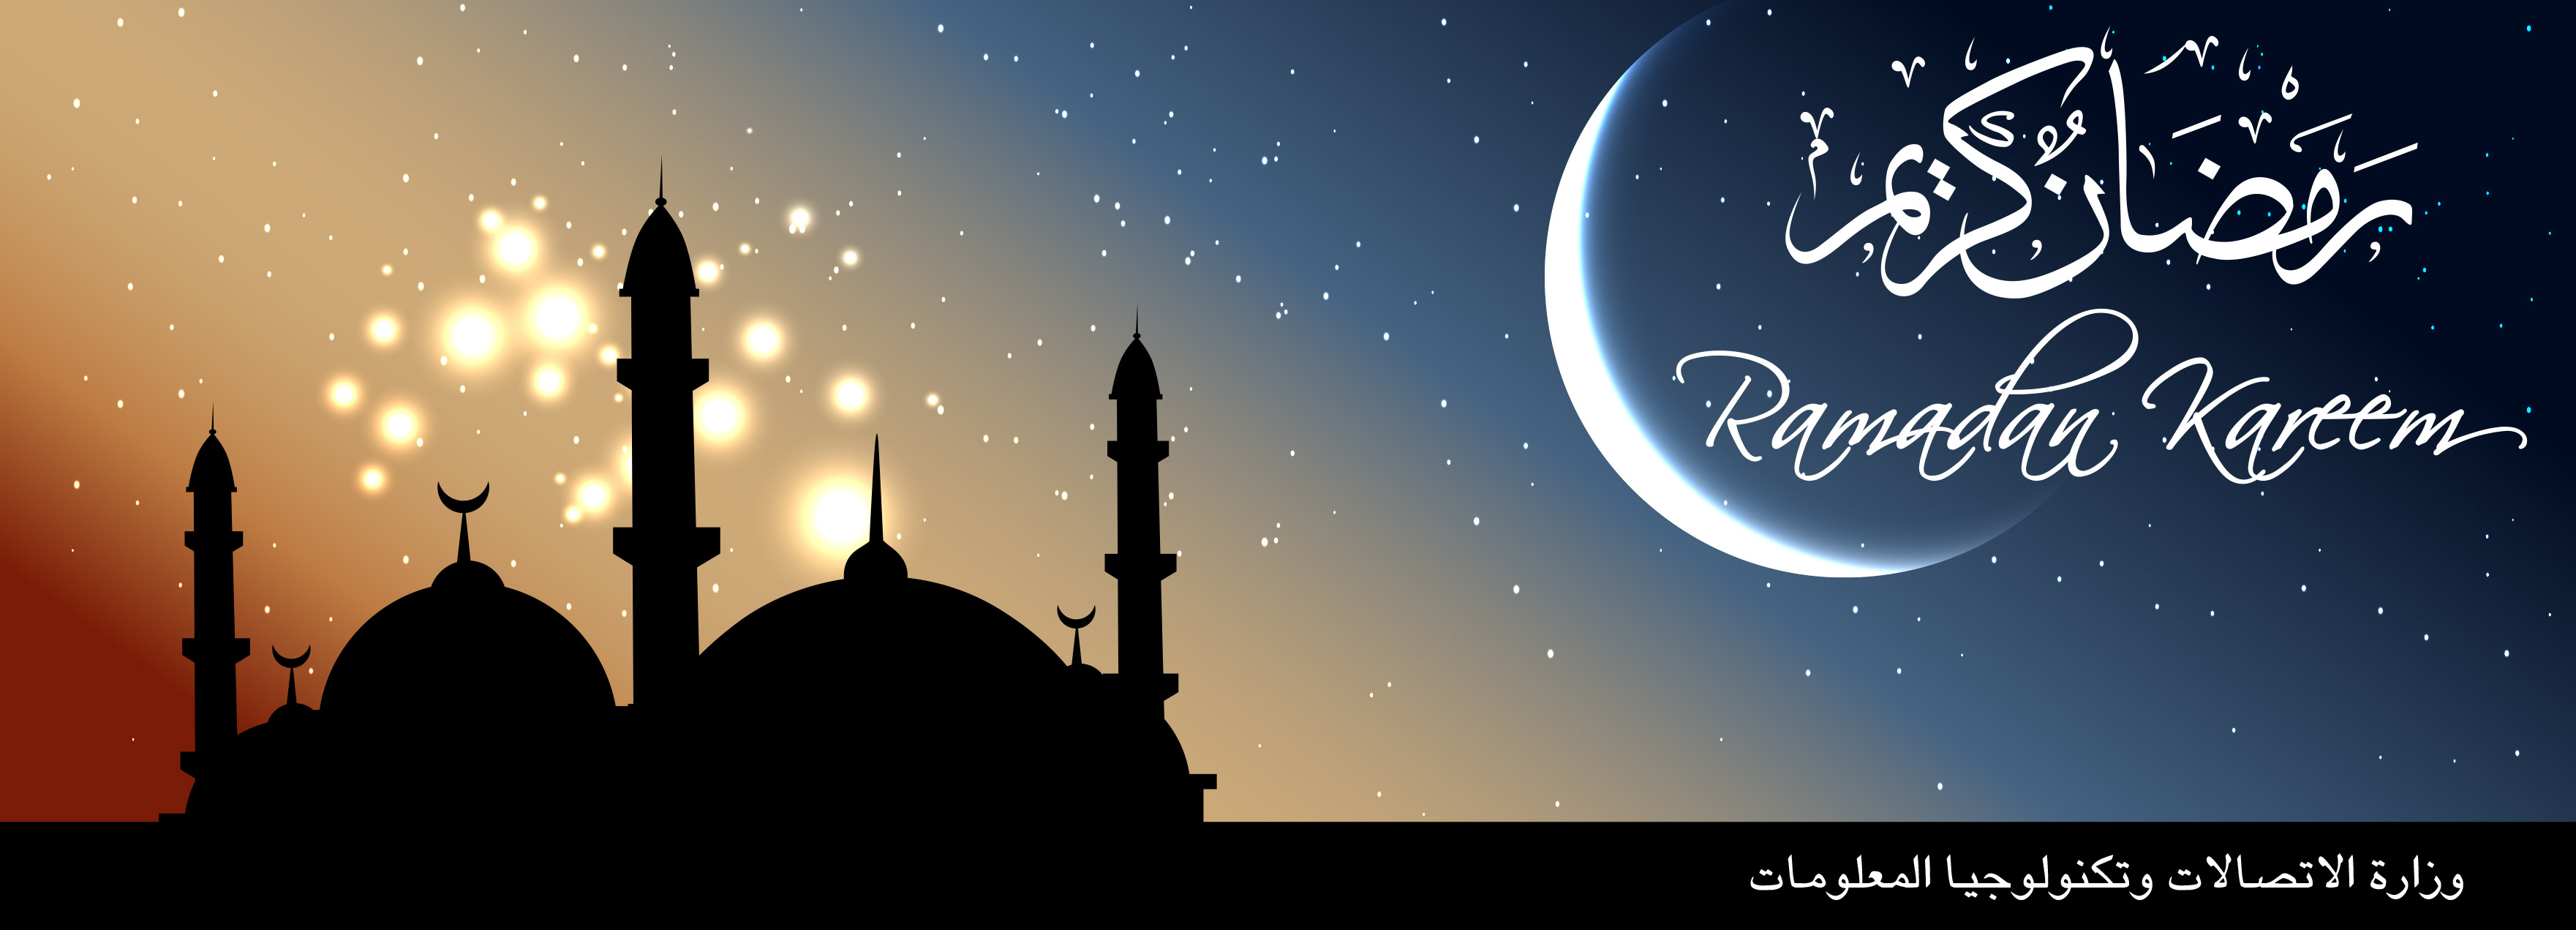 Ramadan-Kareem-e-Greeting-2013-07-06-Final